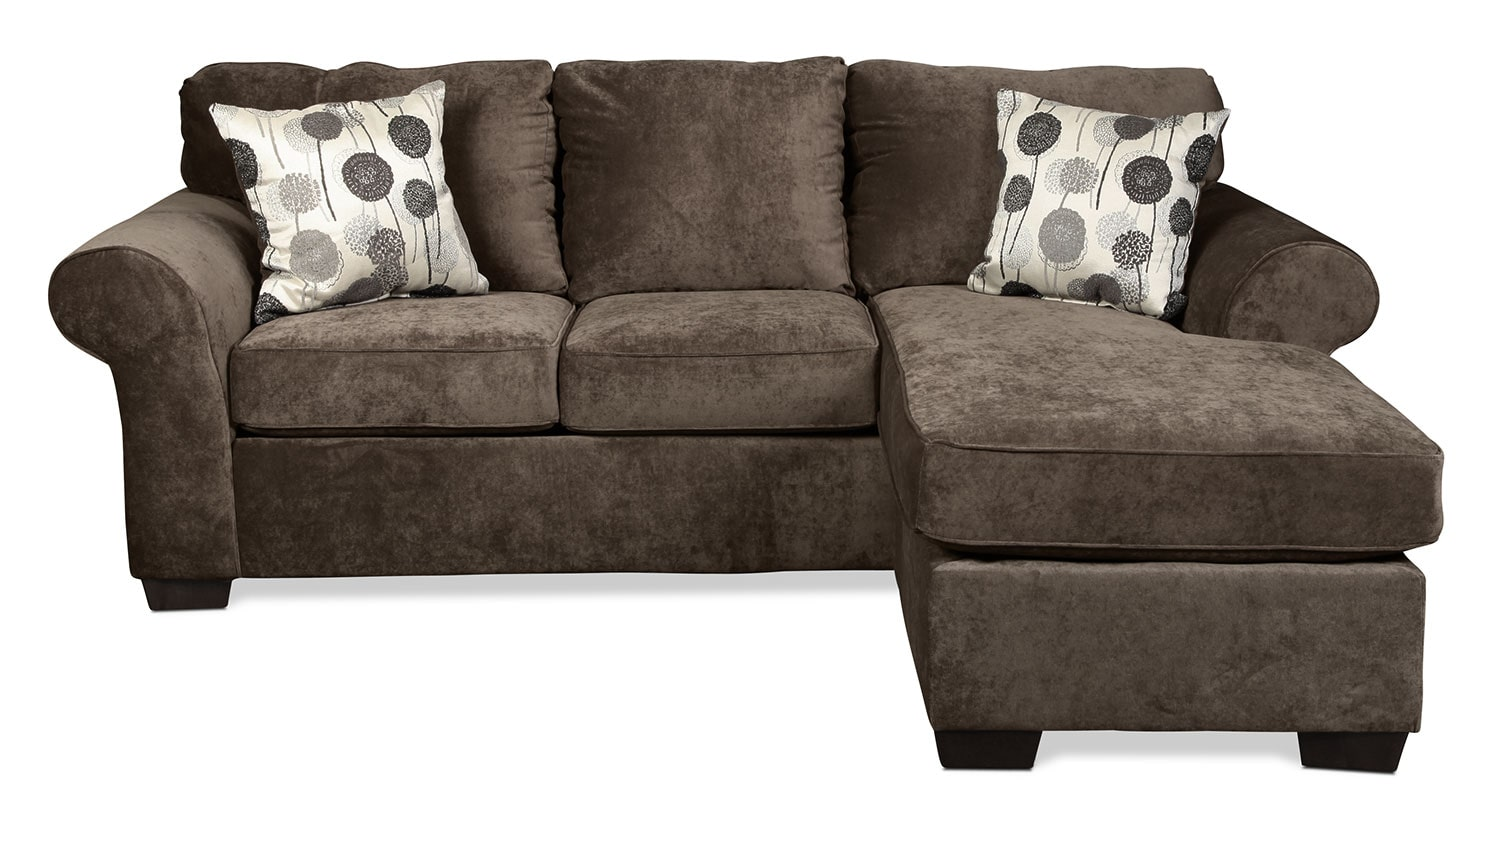 Roseville Chaise Sofa - Ash